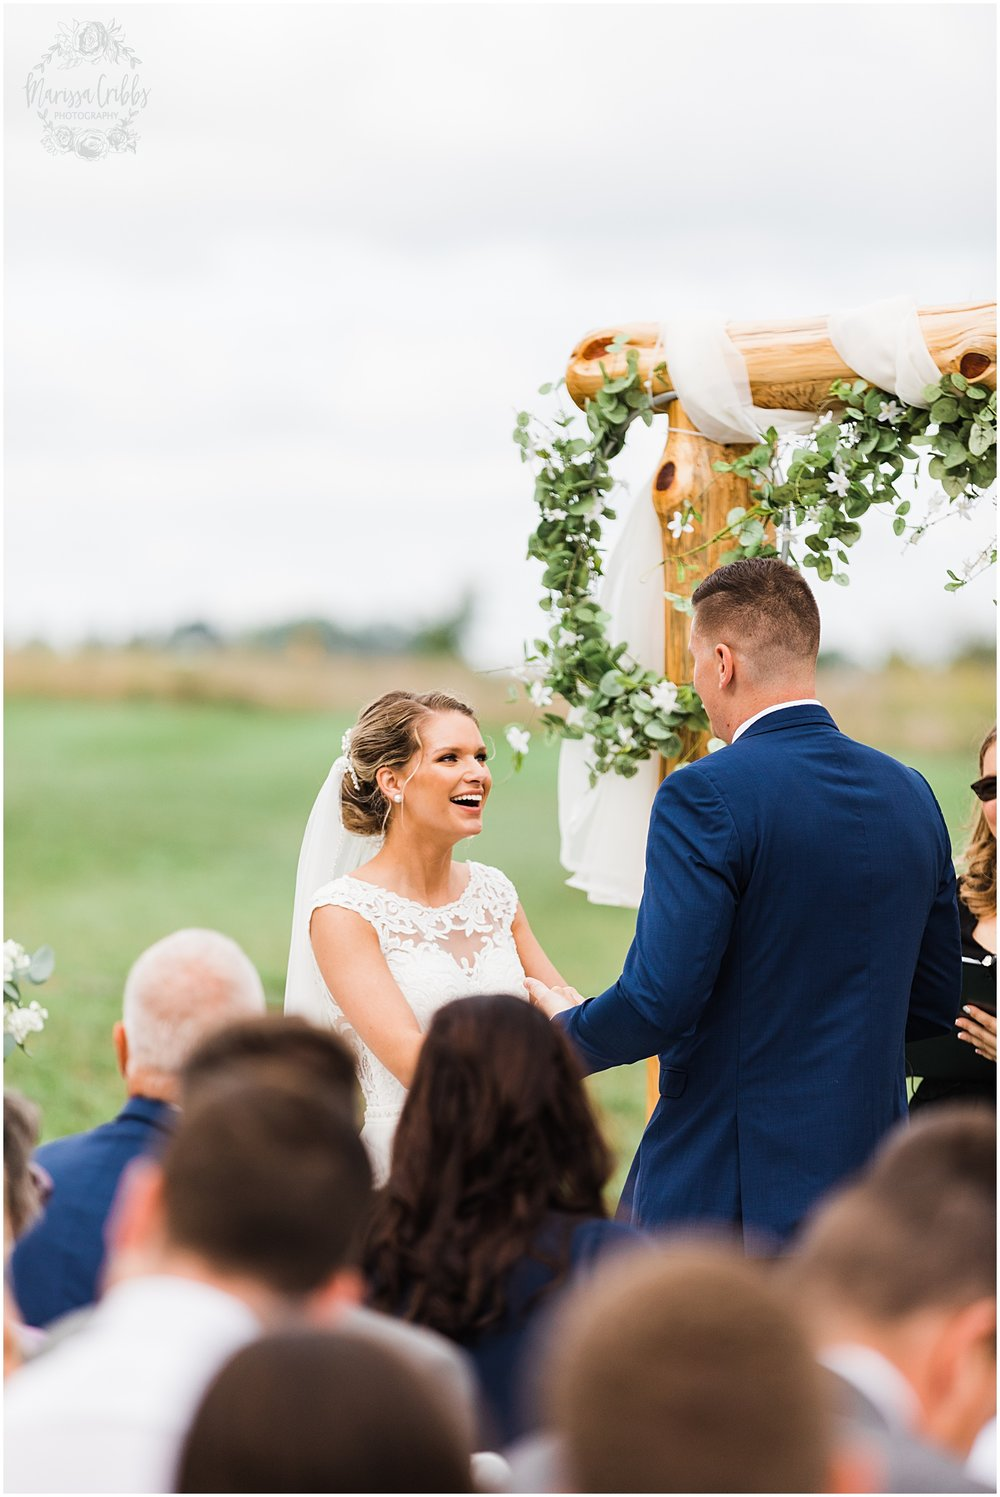 ROUNKLES WEDDING | MARISSA CRIBBS PHOTOGRAPHY | MILDALE FARM_6156.jpg